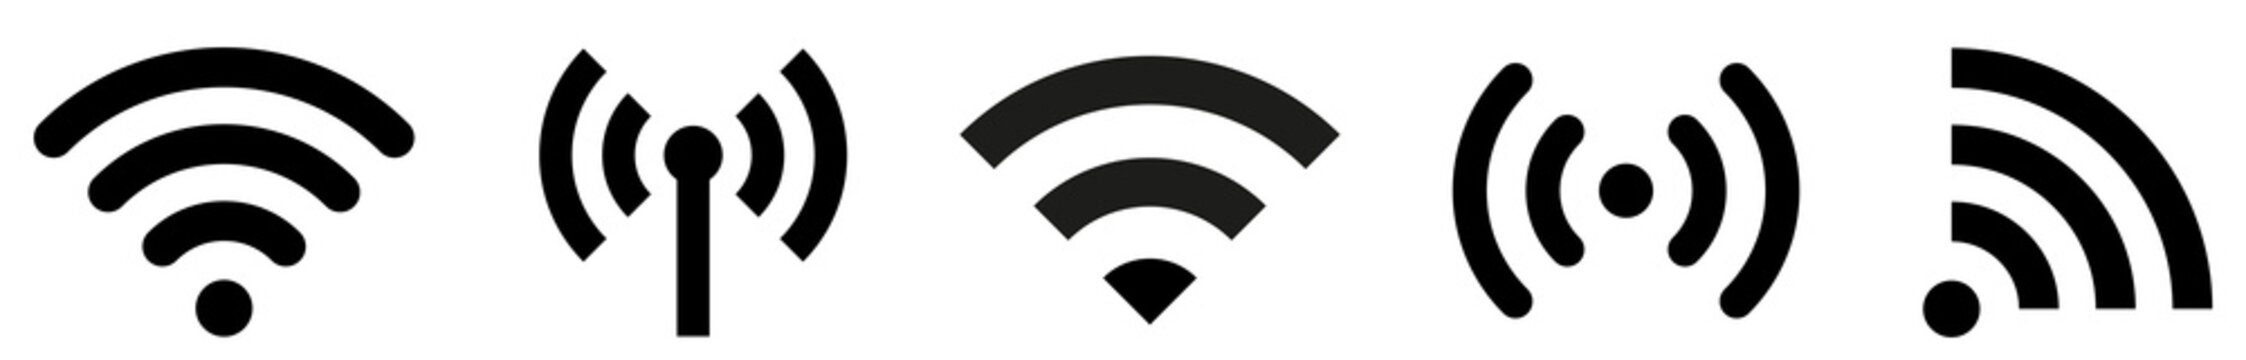 WI-FI and wireless icon. Wi-fi signal collection. Remote internet access collection. Internet Connection symbol.